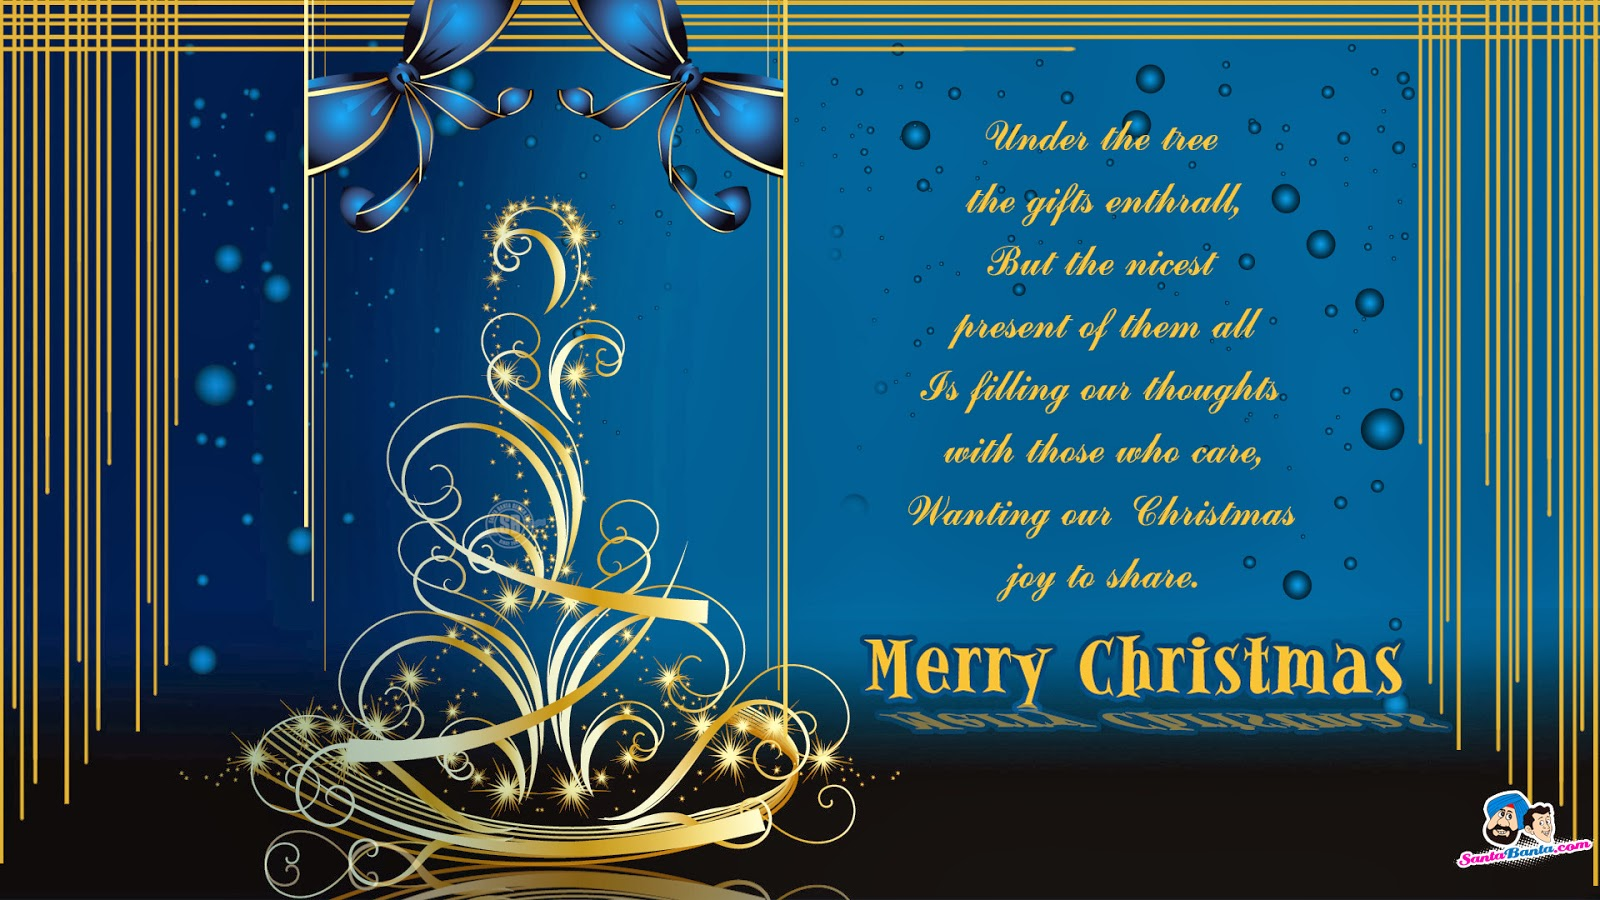 Religious Christmas Background.Free Download Cute Religious Christmas Images